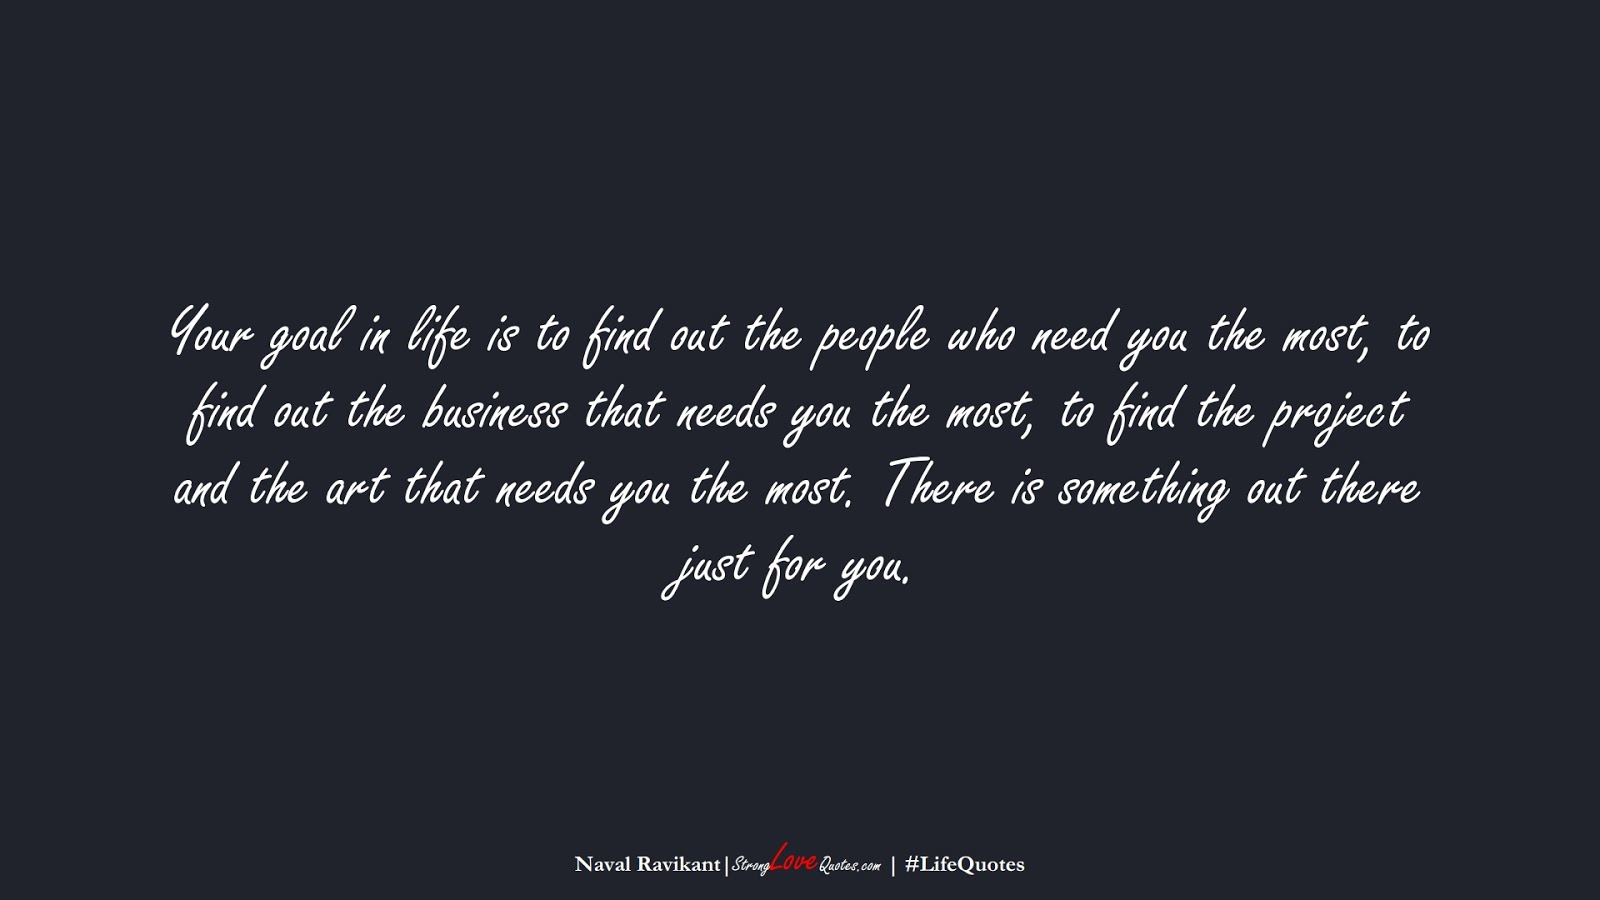 Your goal in life is to find out the people who need you the most, to find out the business that needs you the most, to find the project and the art that needs you the most. There is something out there just for you. (Naval Ravikant);  #LifeQuotes